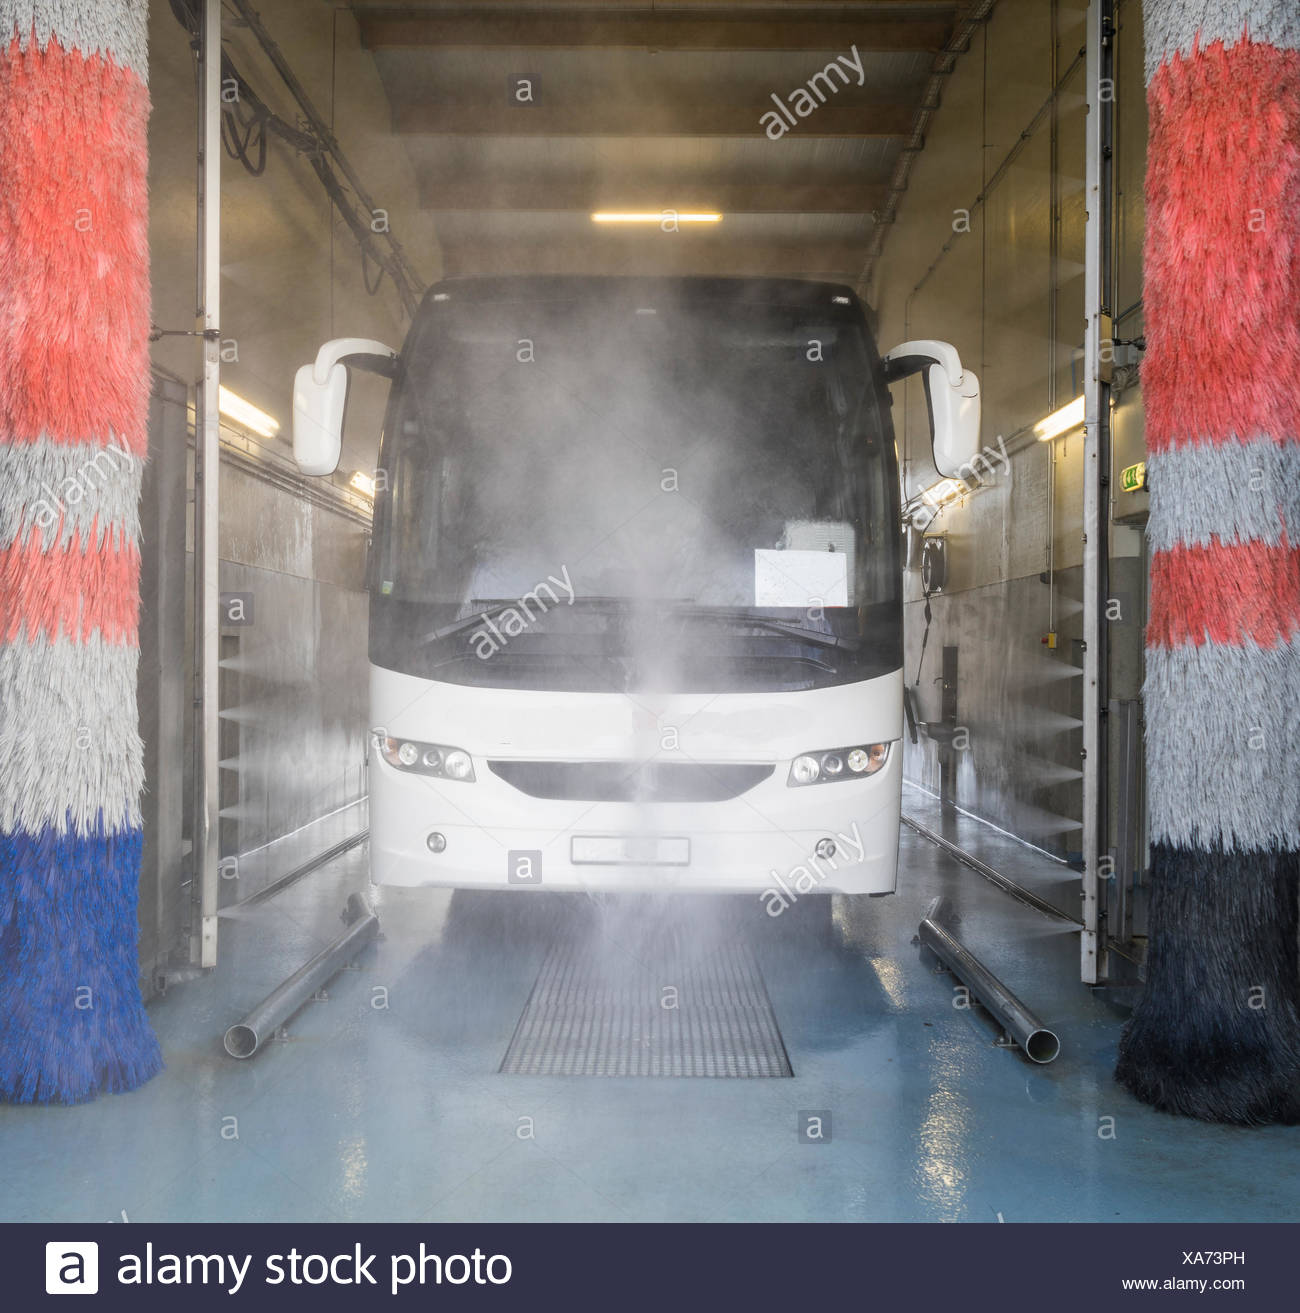 Tour bus in a large car wash. - Stock Image